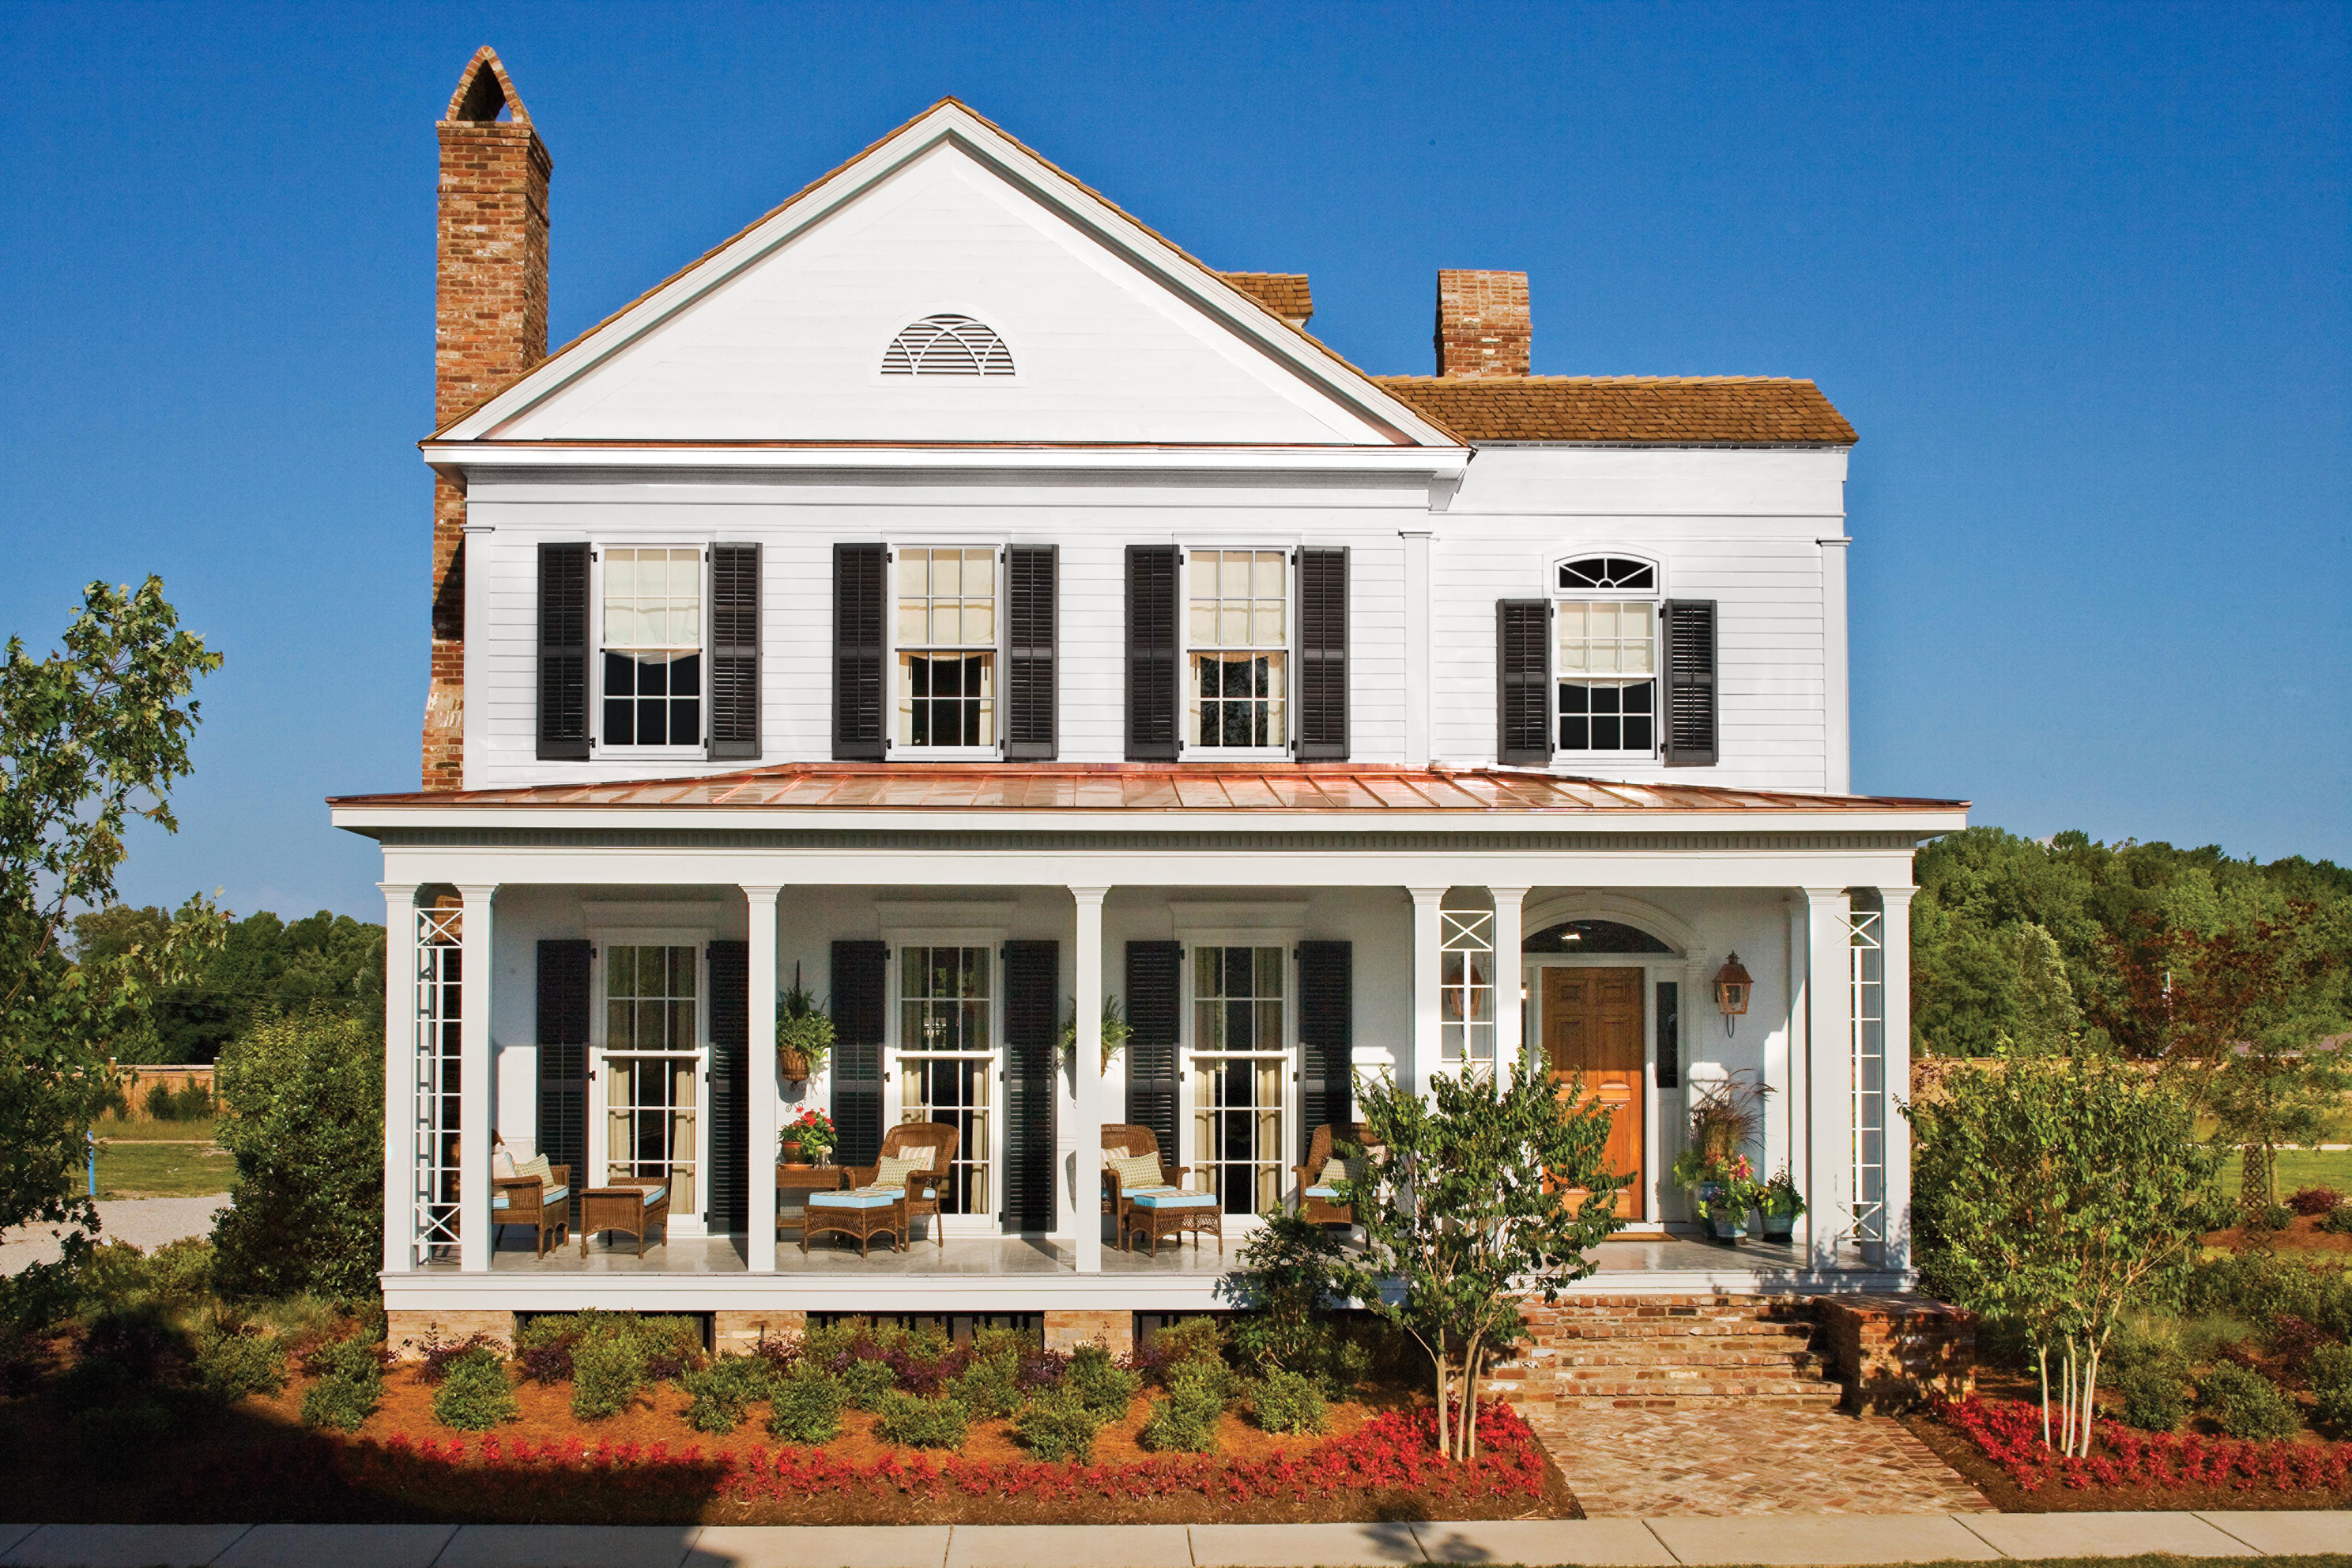 awesome southern living house plan 593 photos 3d house designs simple farmhouse plans southern living mama house rn black